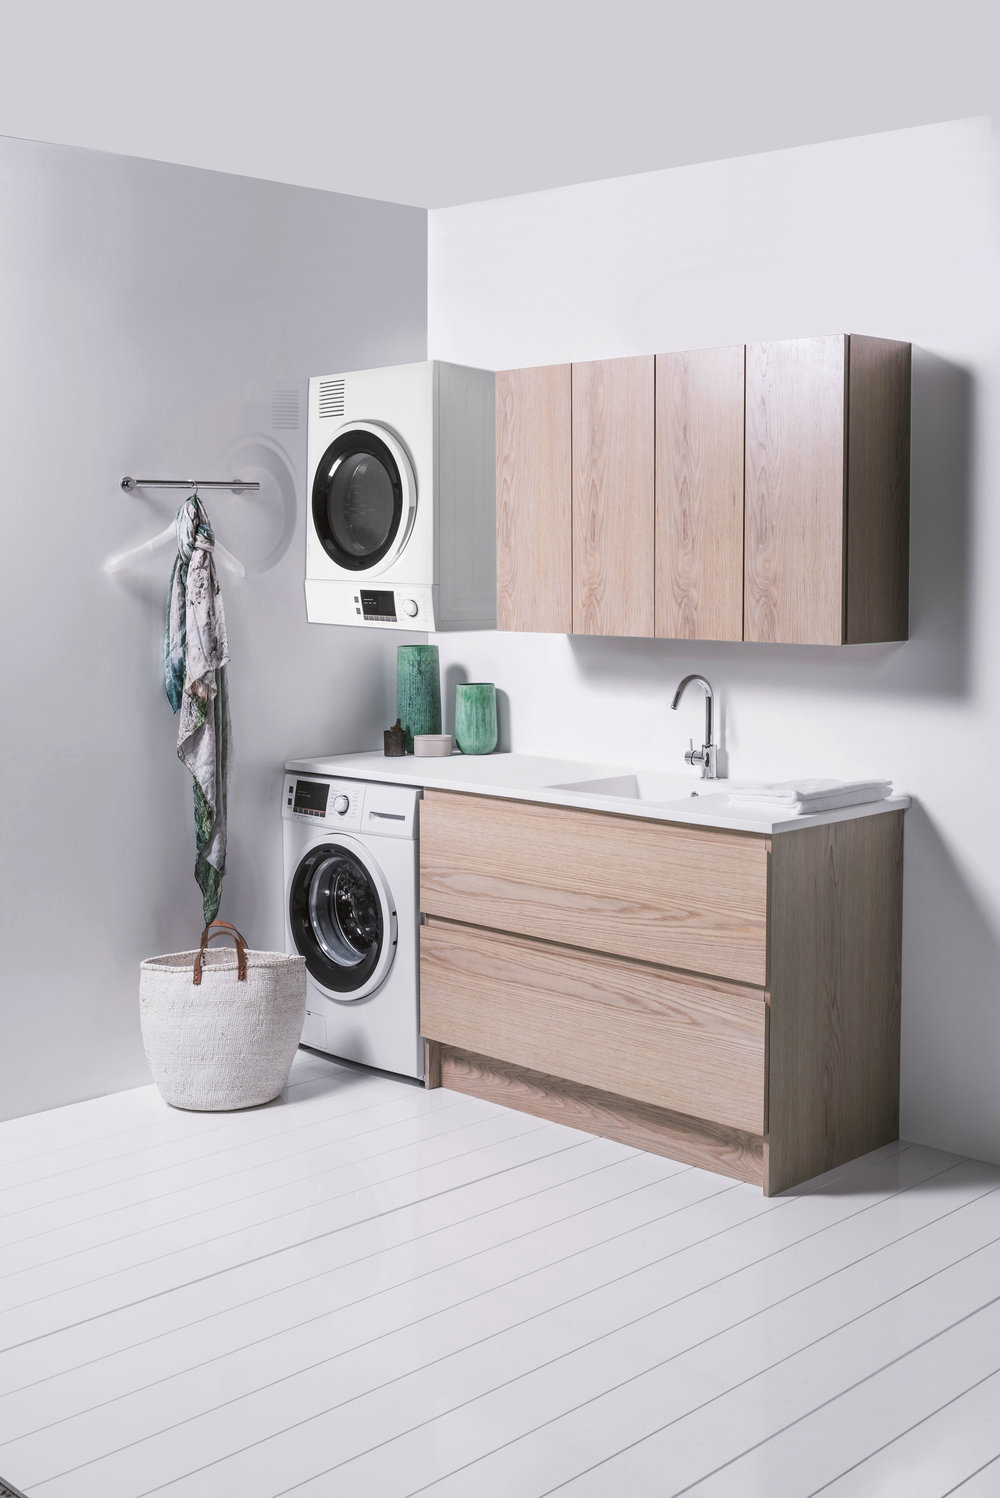 Bath Co Laundry range in Blonde Oak.